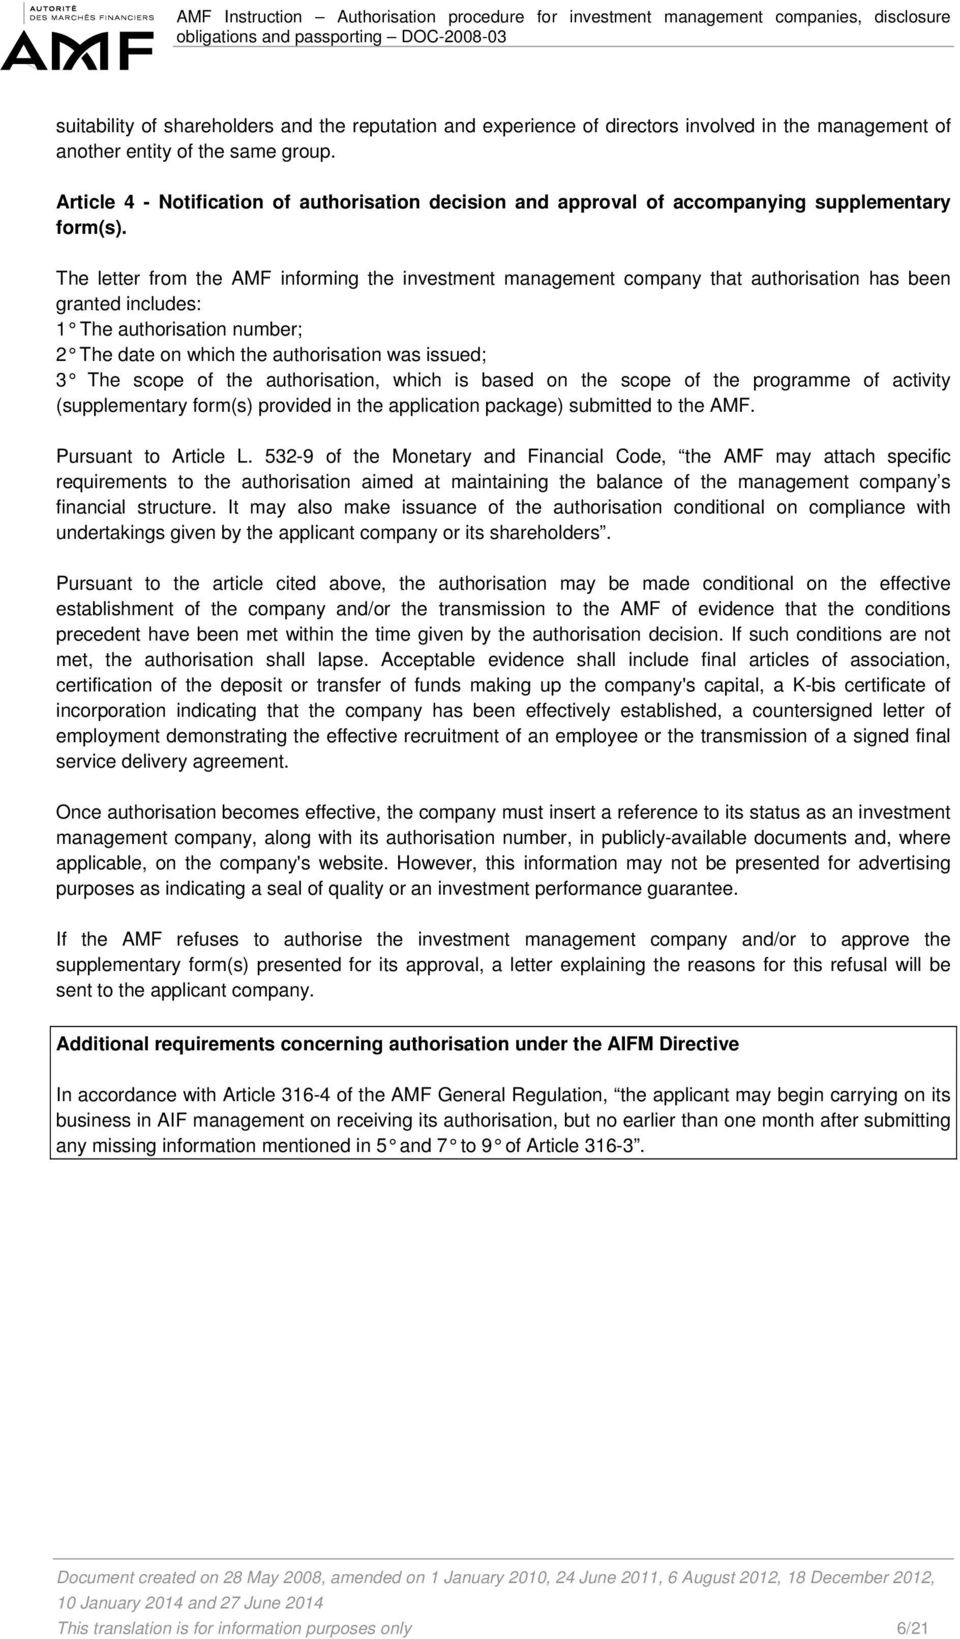 The letter from the AMF informing the investment management company that authorisation has been granted includes: 1 The authorisation number; 2 The date on which the authorisation was issued; 3 The